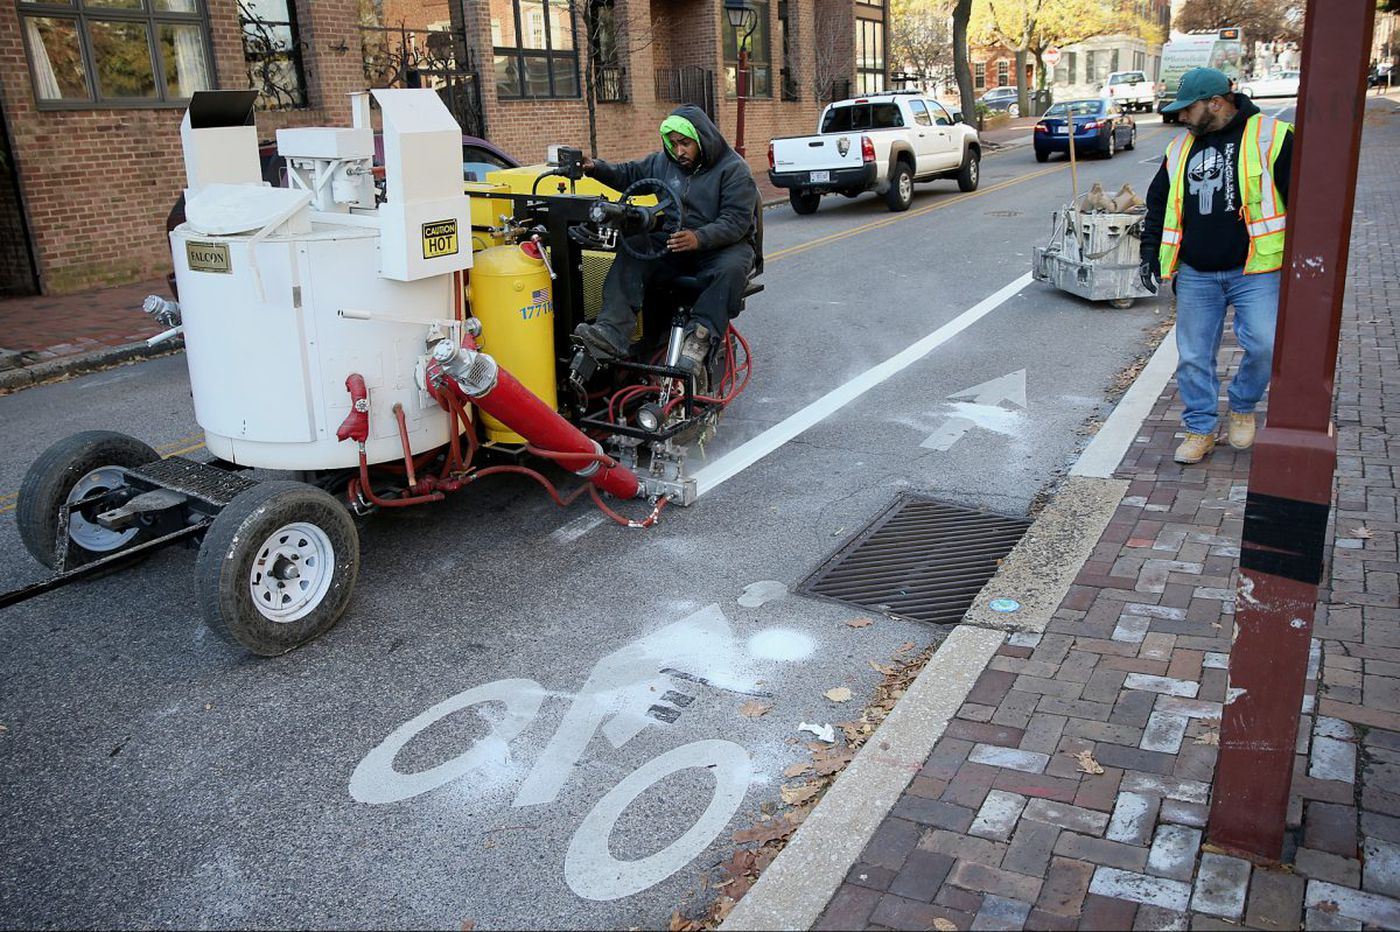 Bike lane change to improve safety in Philly, but many want more … or less